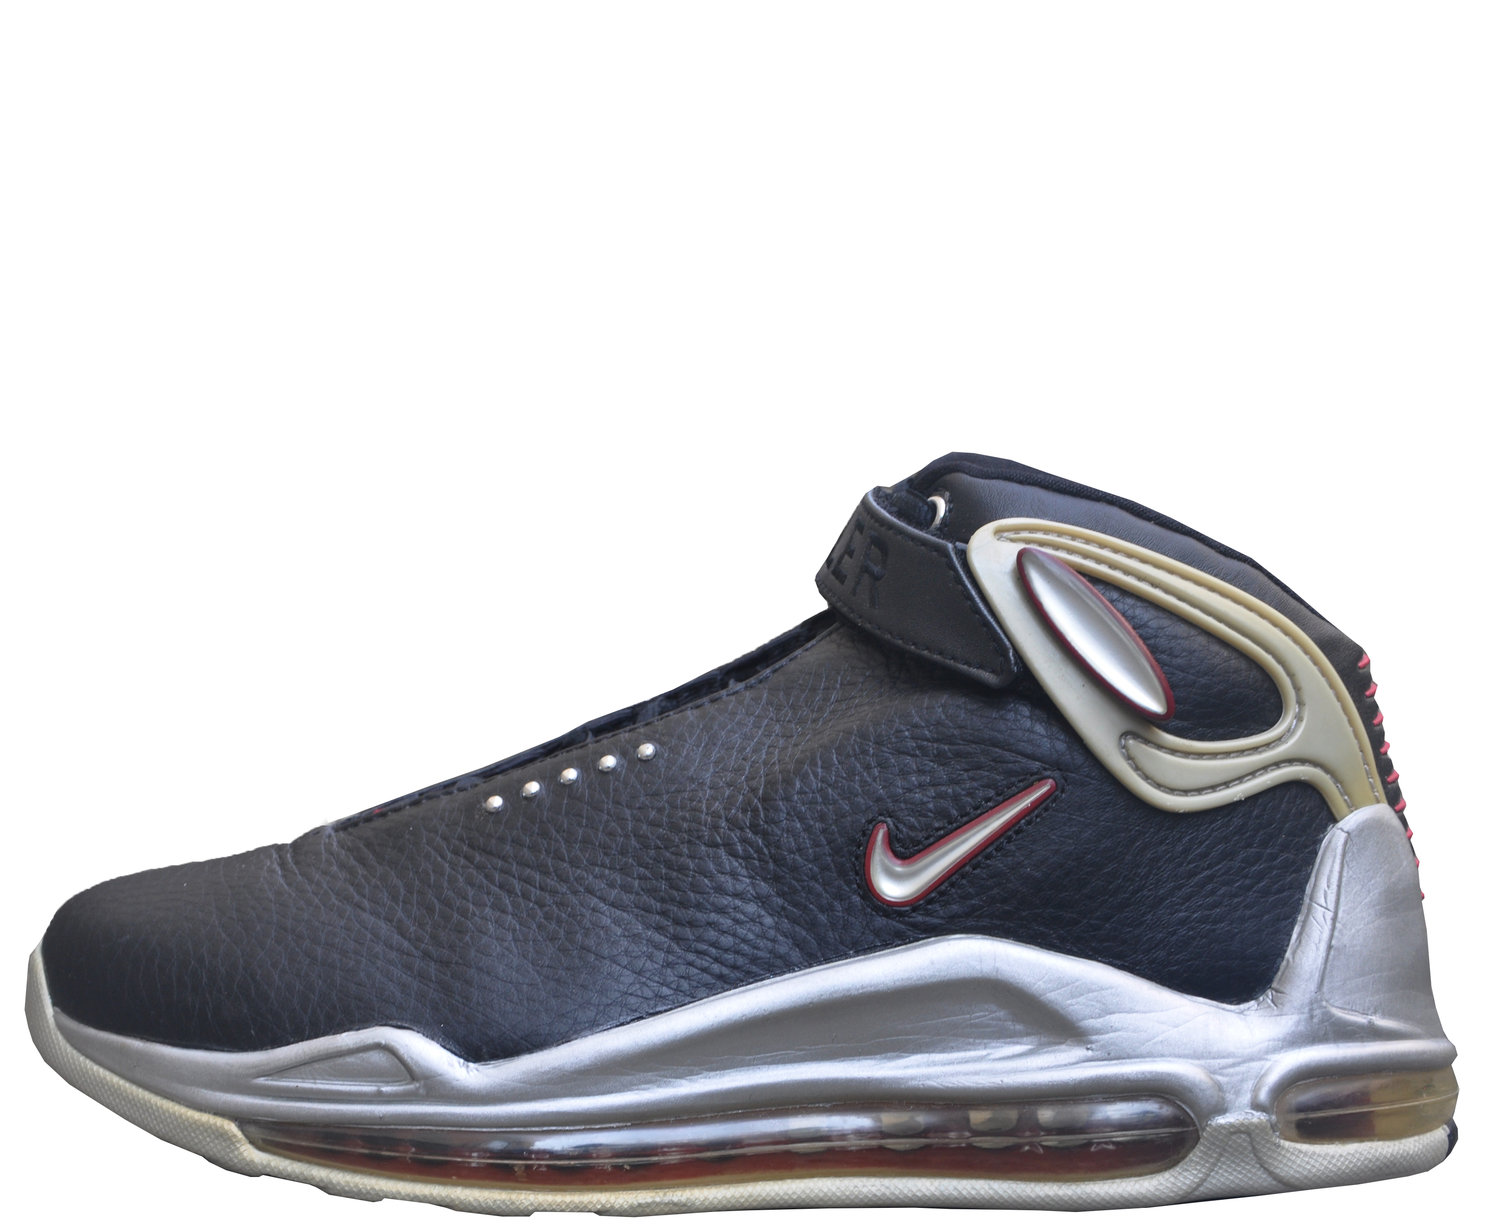 Nike Air Max Elite Battle Grounds Black   Red   Silver (Size 8.5) DS — Roots 32a59efbc